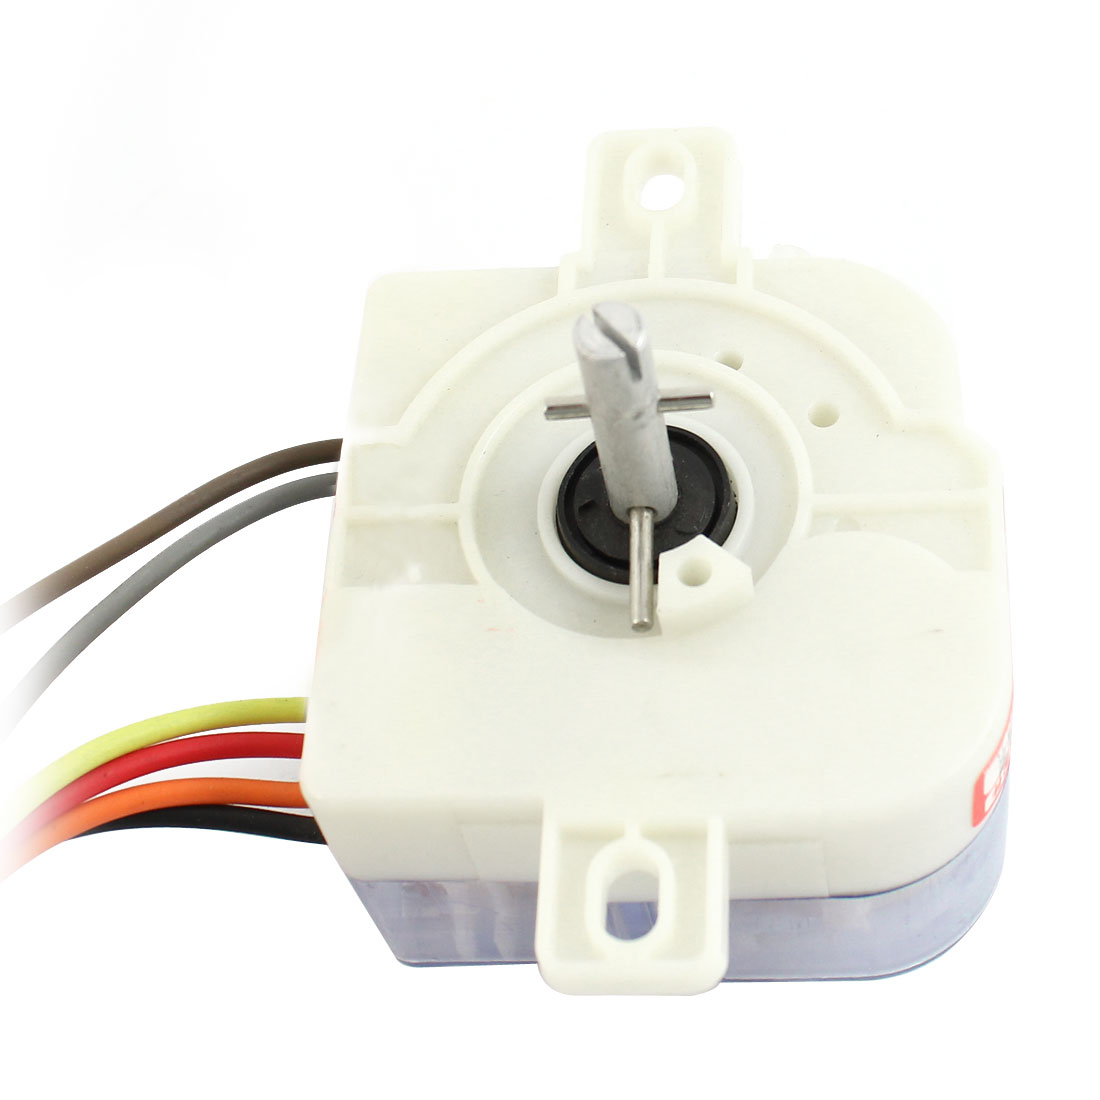 AC220V 3A 6 Wires 90 Degree Rotary Shaft Washing Machine Washer Timer White